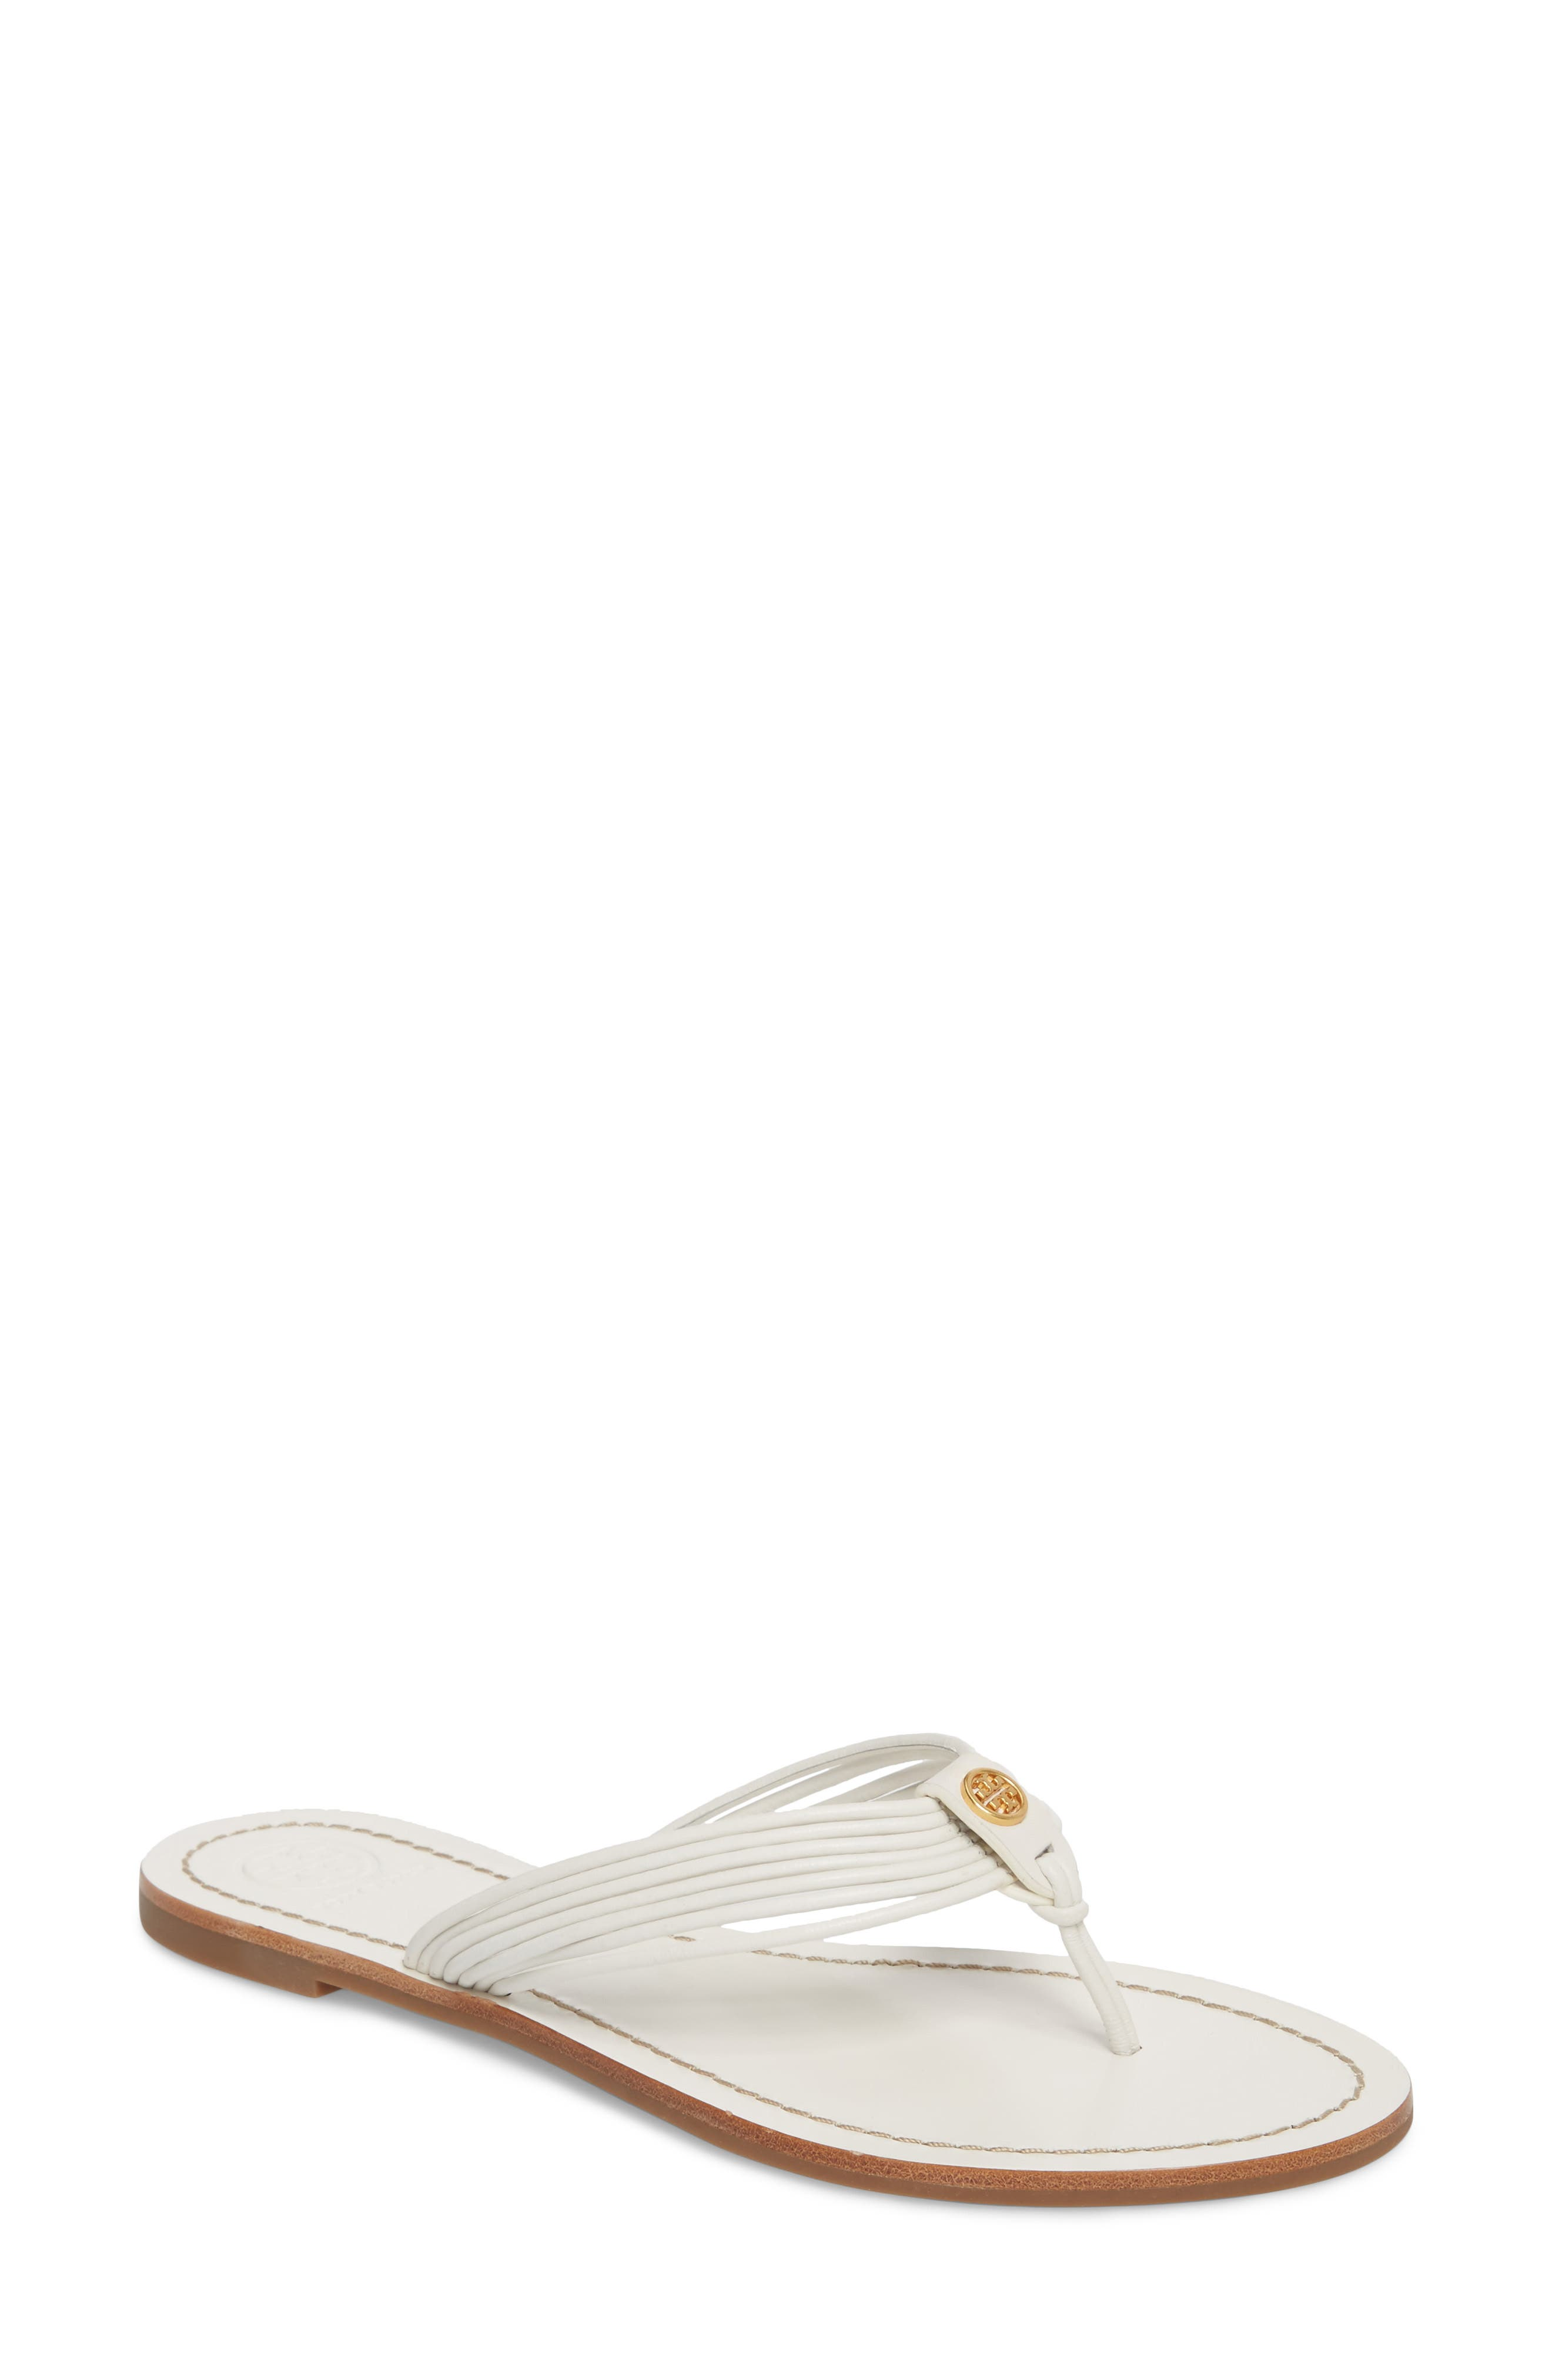 Sienna Strappy Thong Sandal,                         Main,                         color, 123